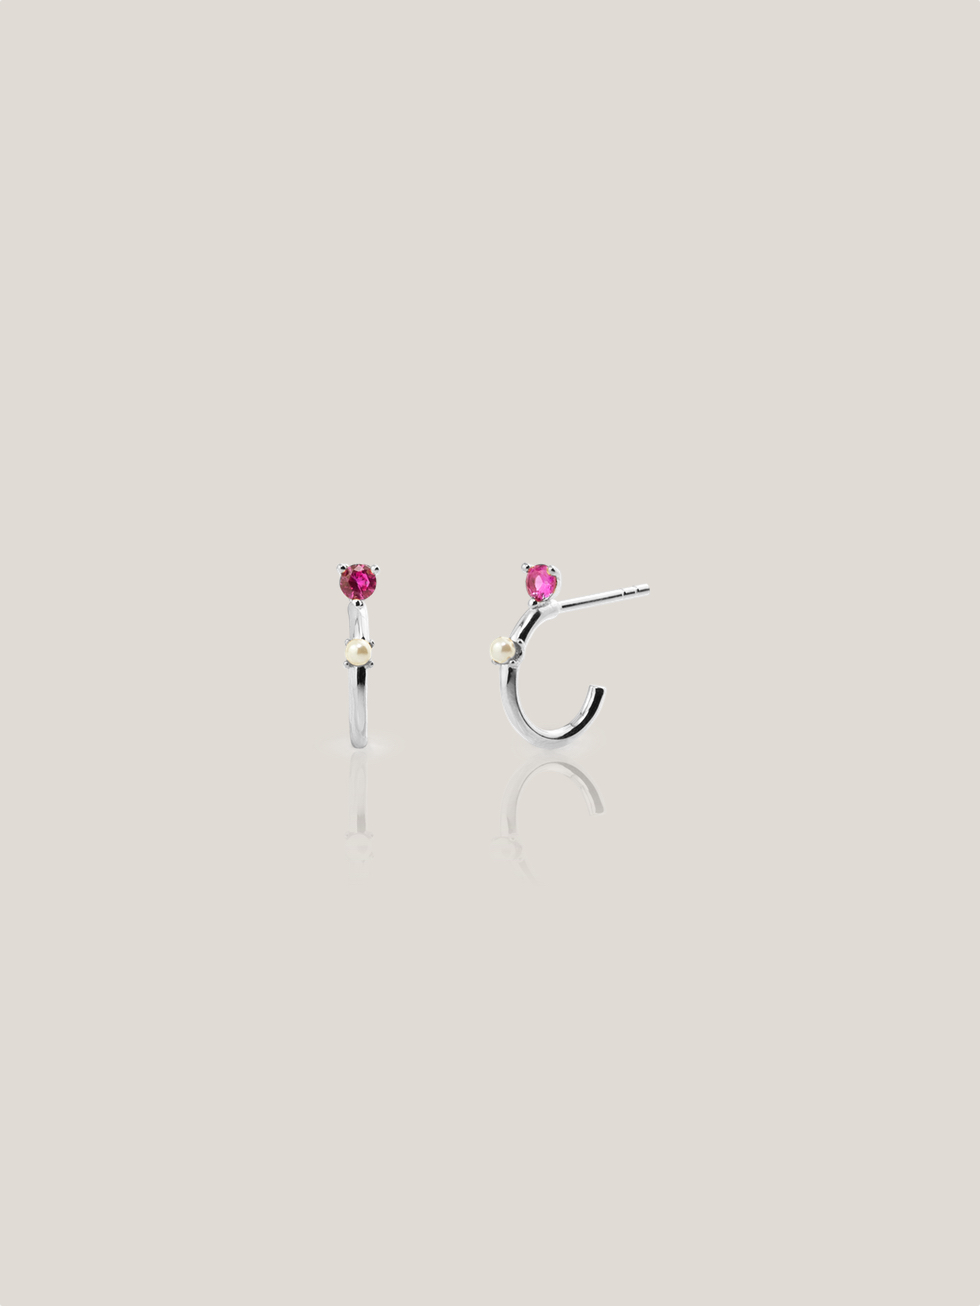 PINK LADY silver hoops earrings